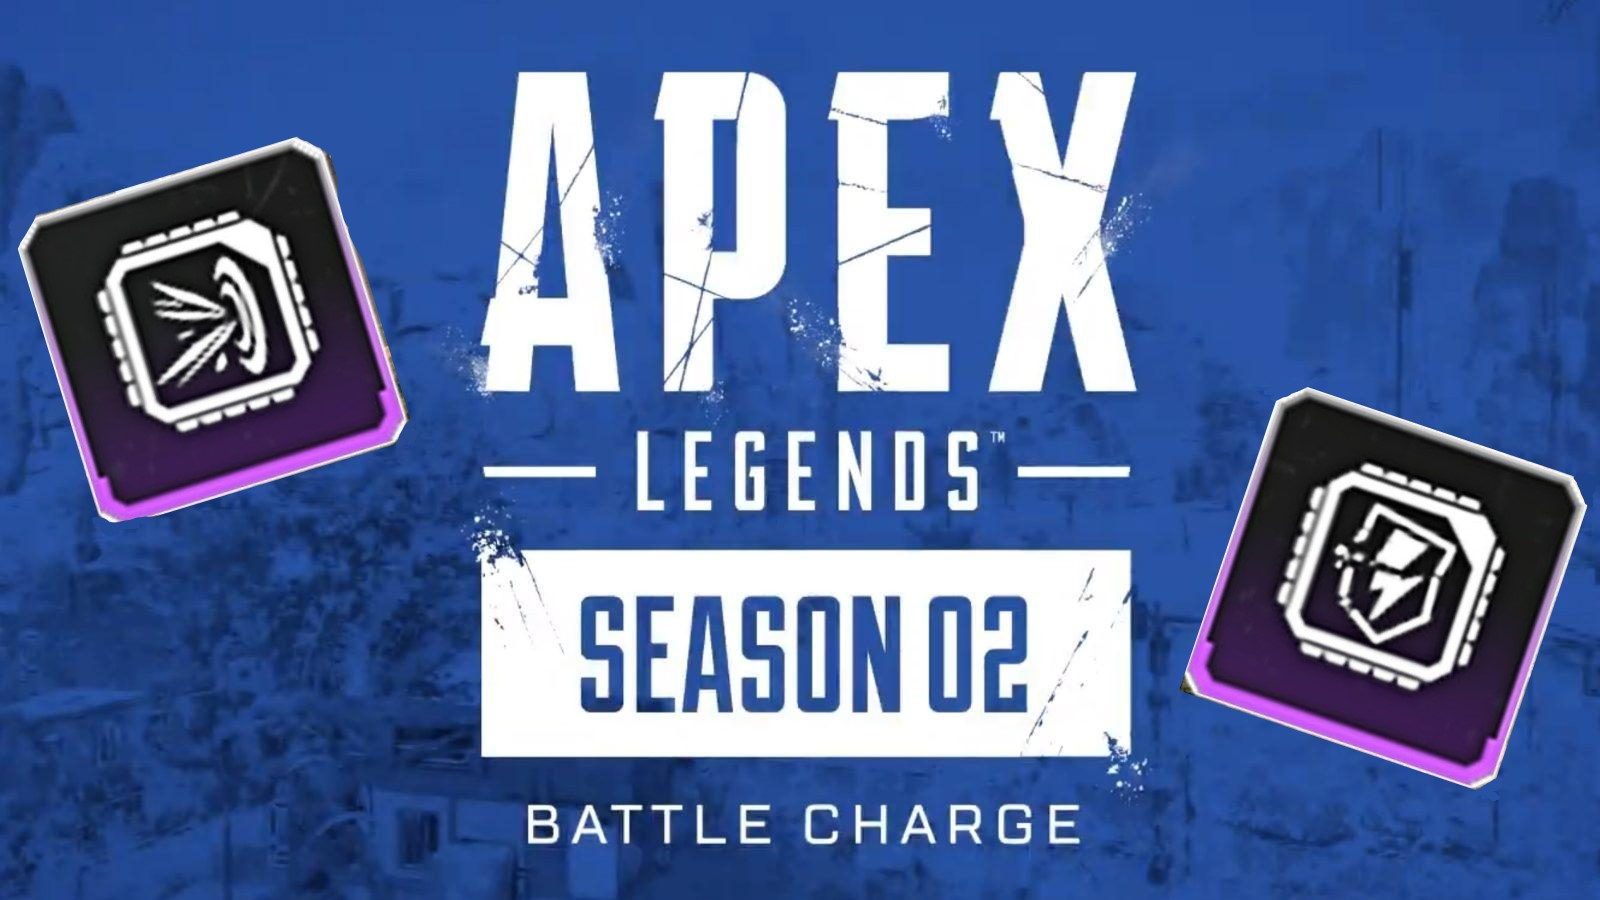 How the new attachments in Apex Legends season 2 are changing the game